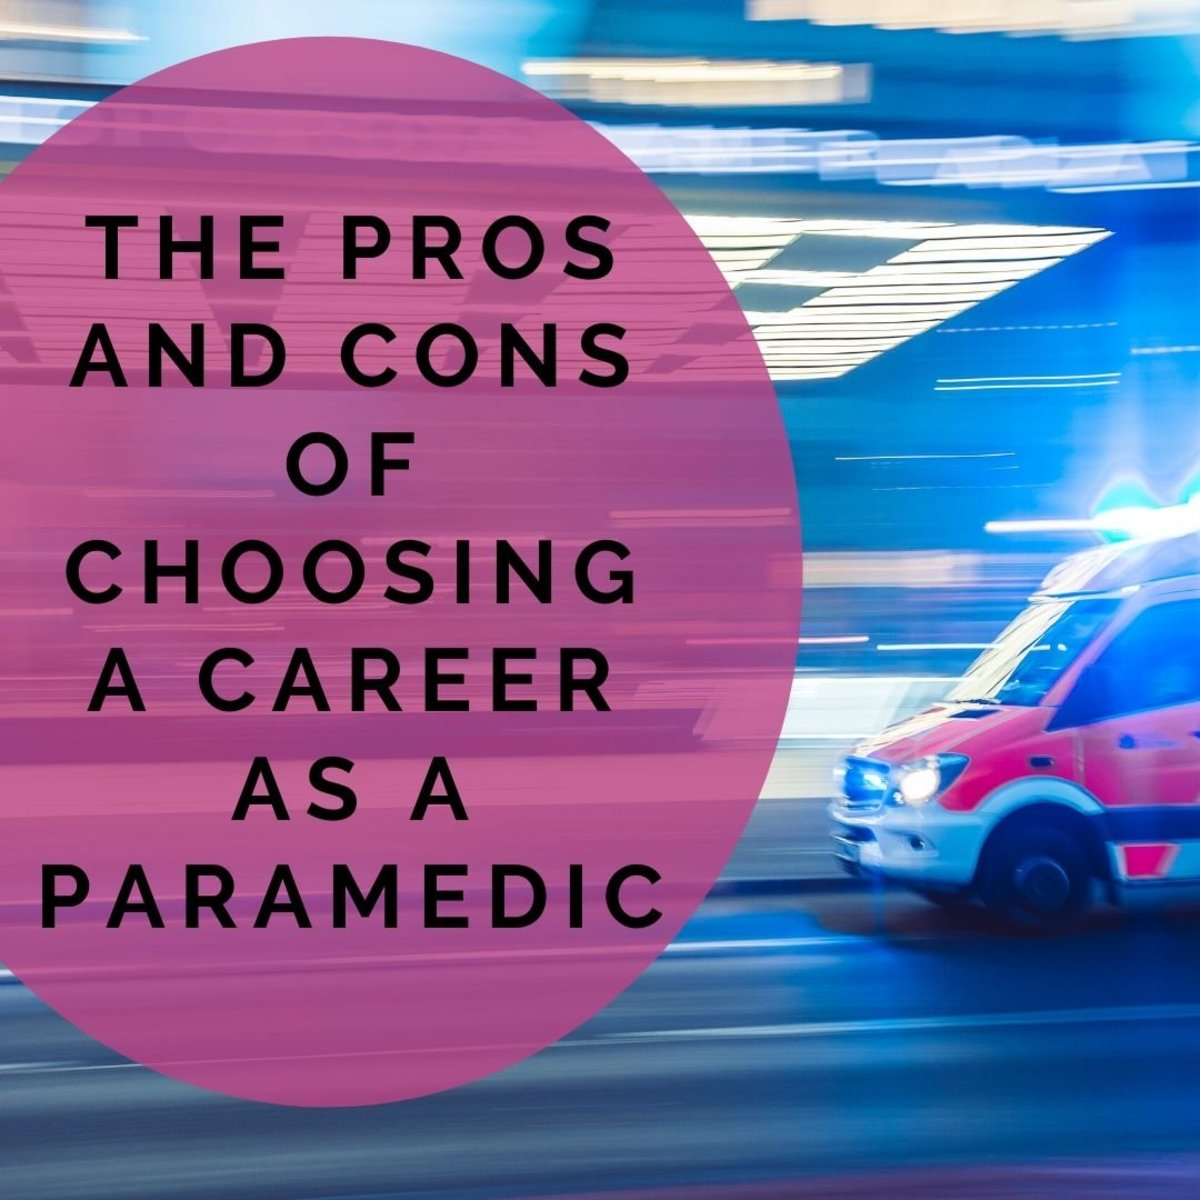 What are the pros and cons of pursuing a career as a paramedic?